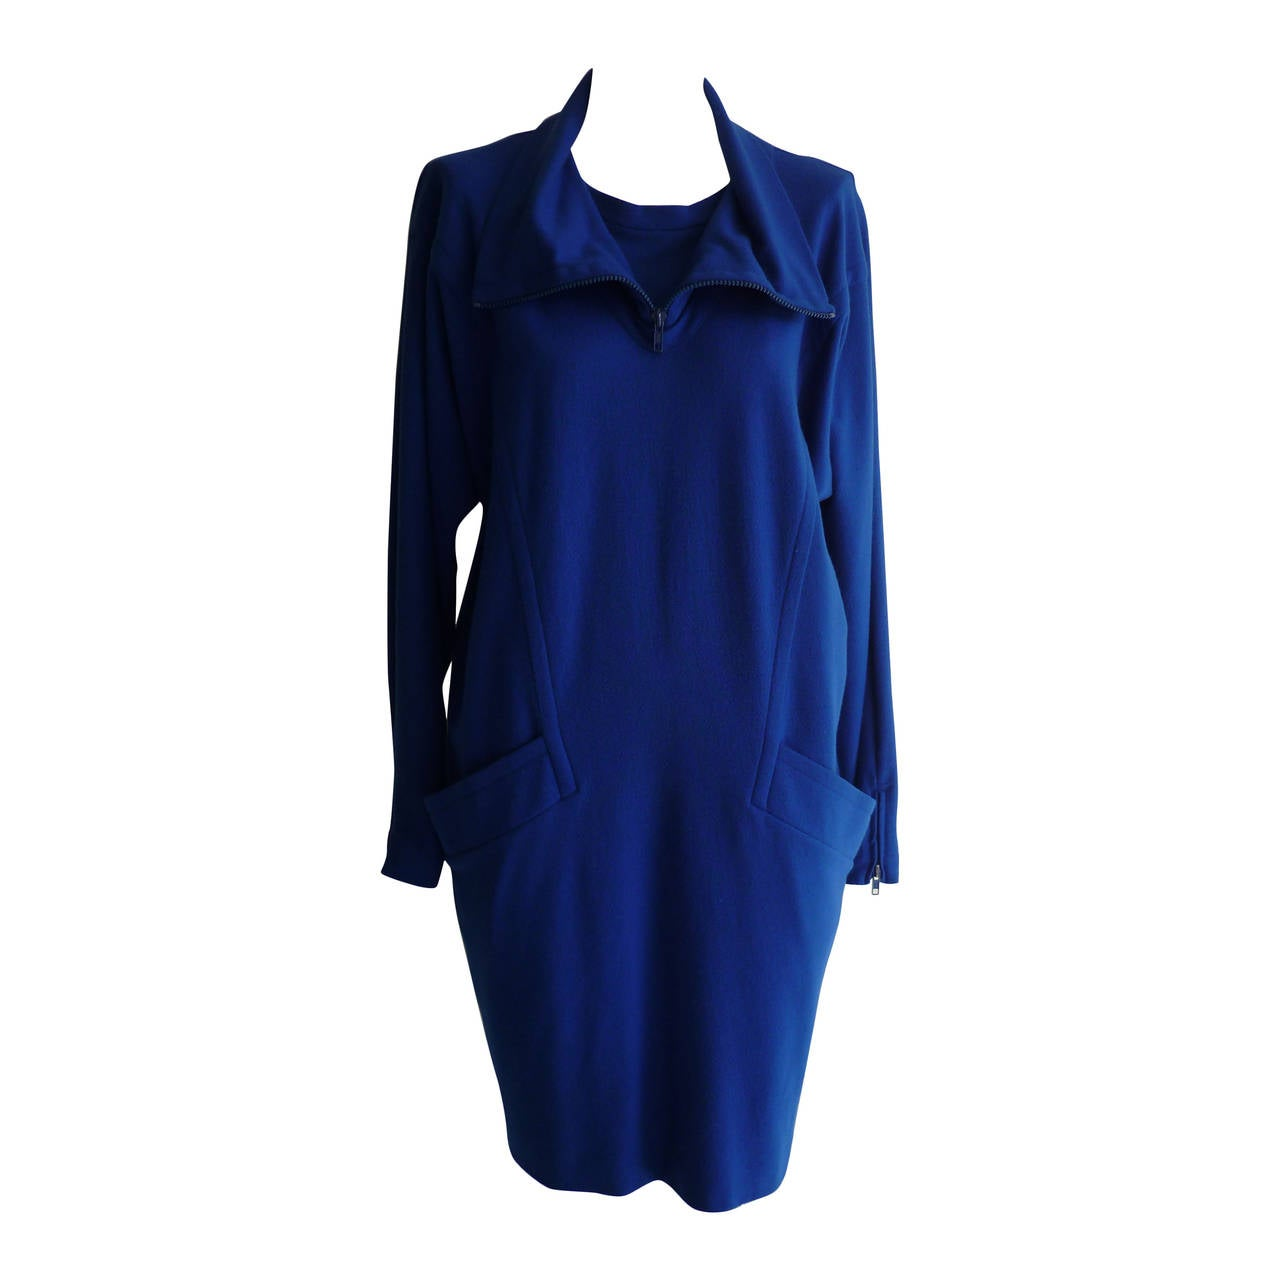 1990s Byblos Cobalt Blue Wool Dress  (44 Itl) For Sale